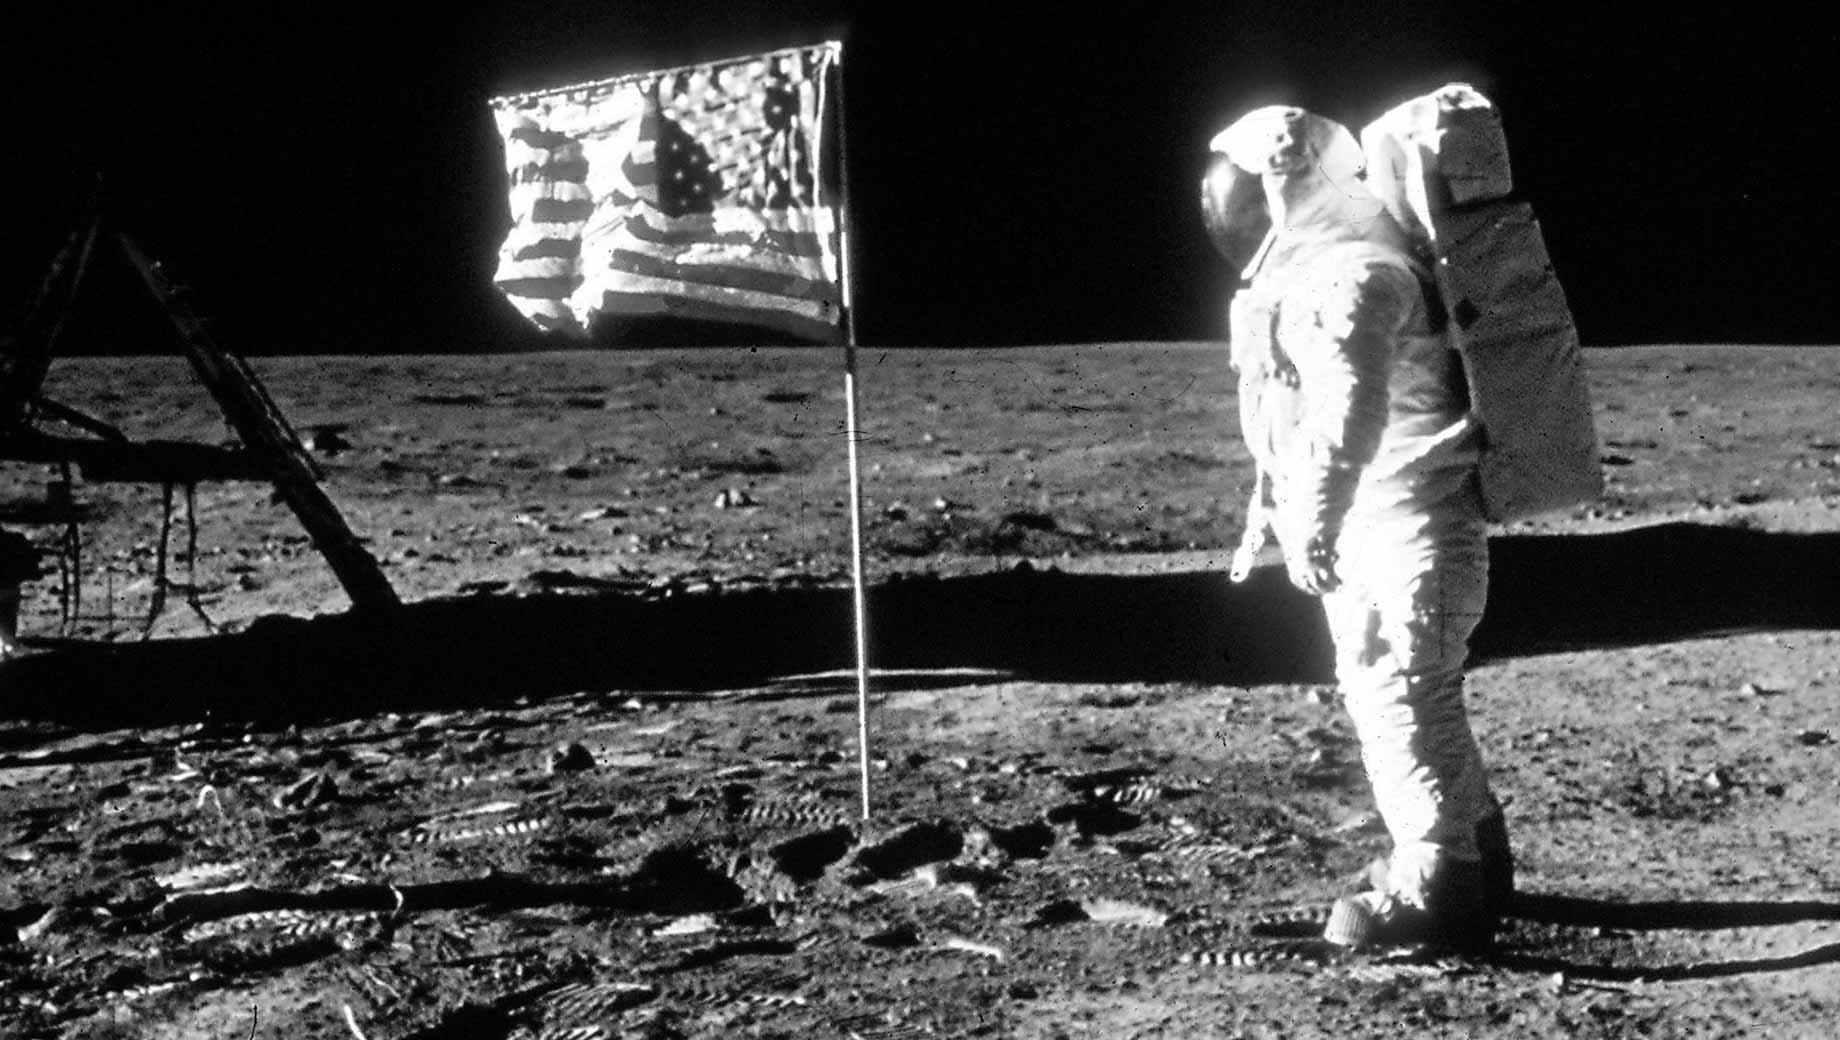 50 Years After Moon Landing, Support for Space Program High